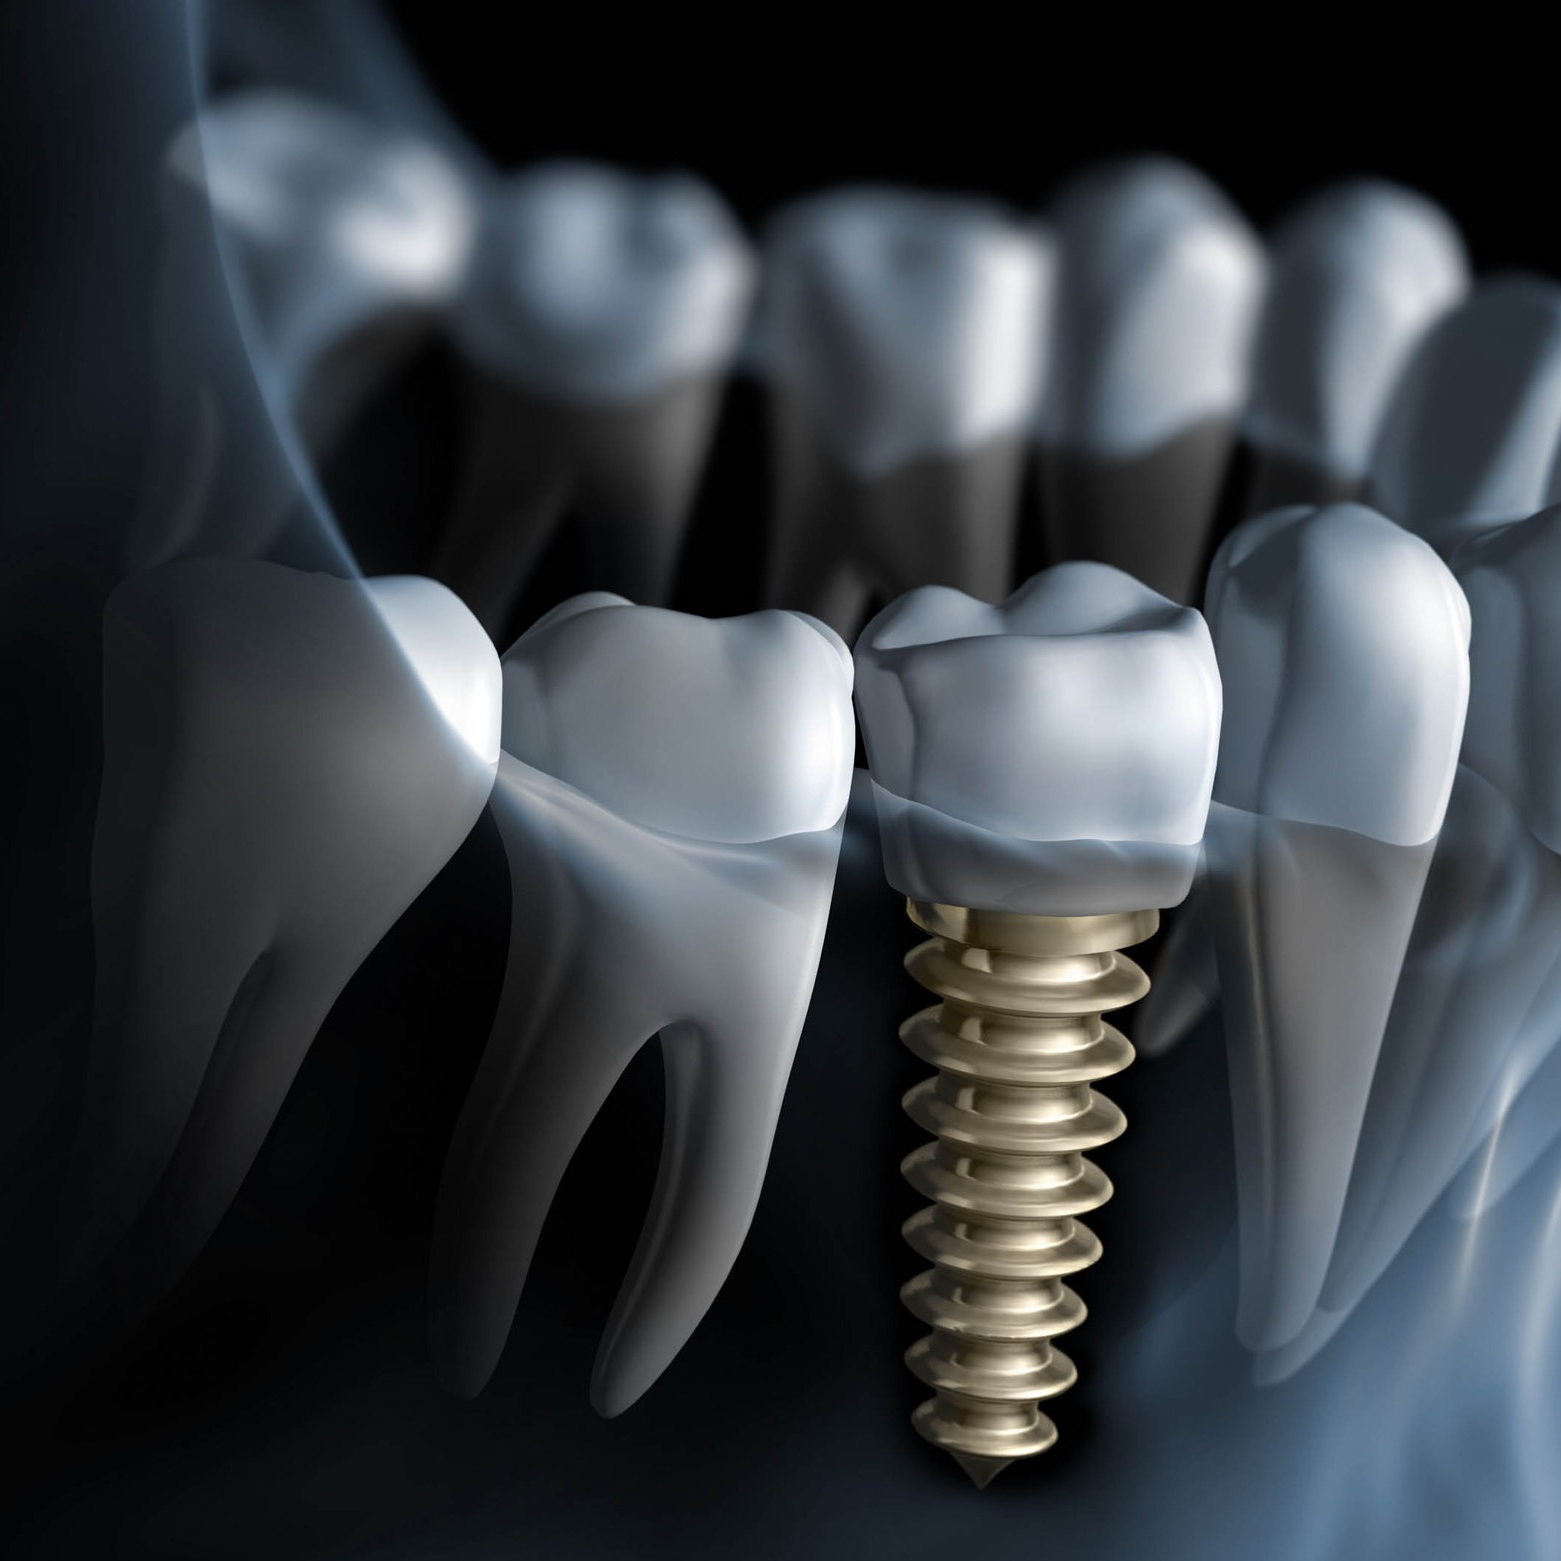 Single Dental Implant in Colombia